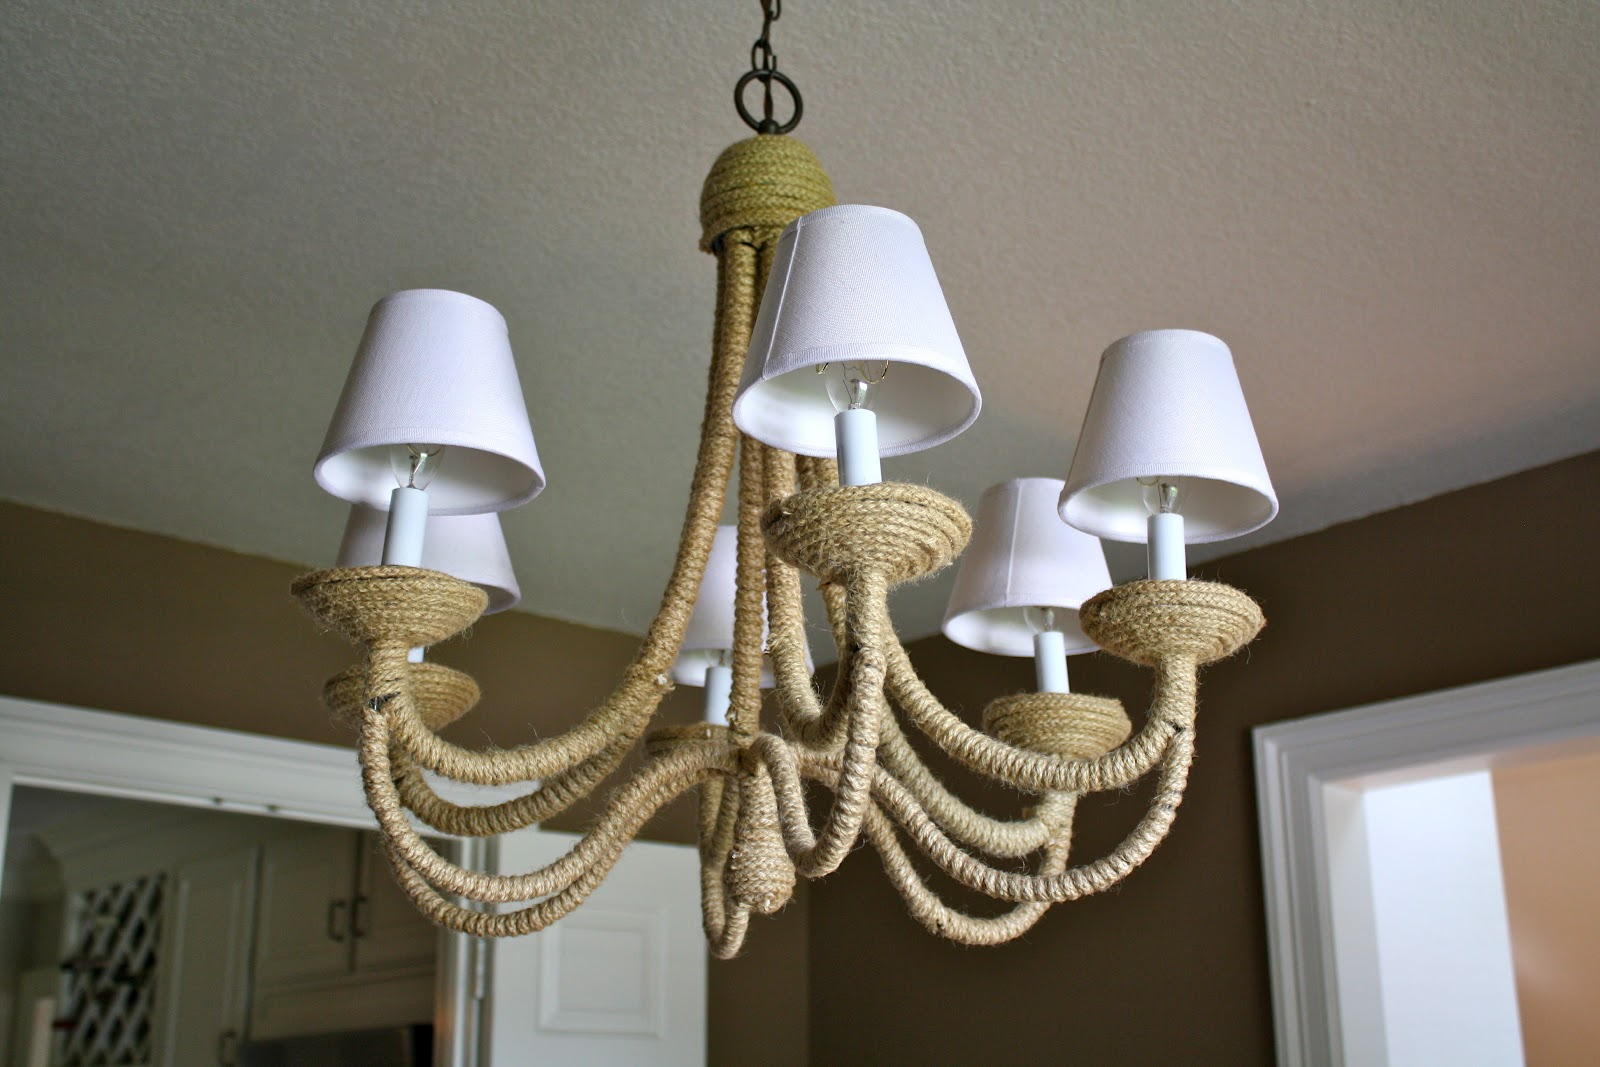 How to update an ugly apt brass chandelier wout removing fr ceiling how to update an ugly apt brass chandelier wout removing fr ceiling hometalk arubaitofo Choice Image